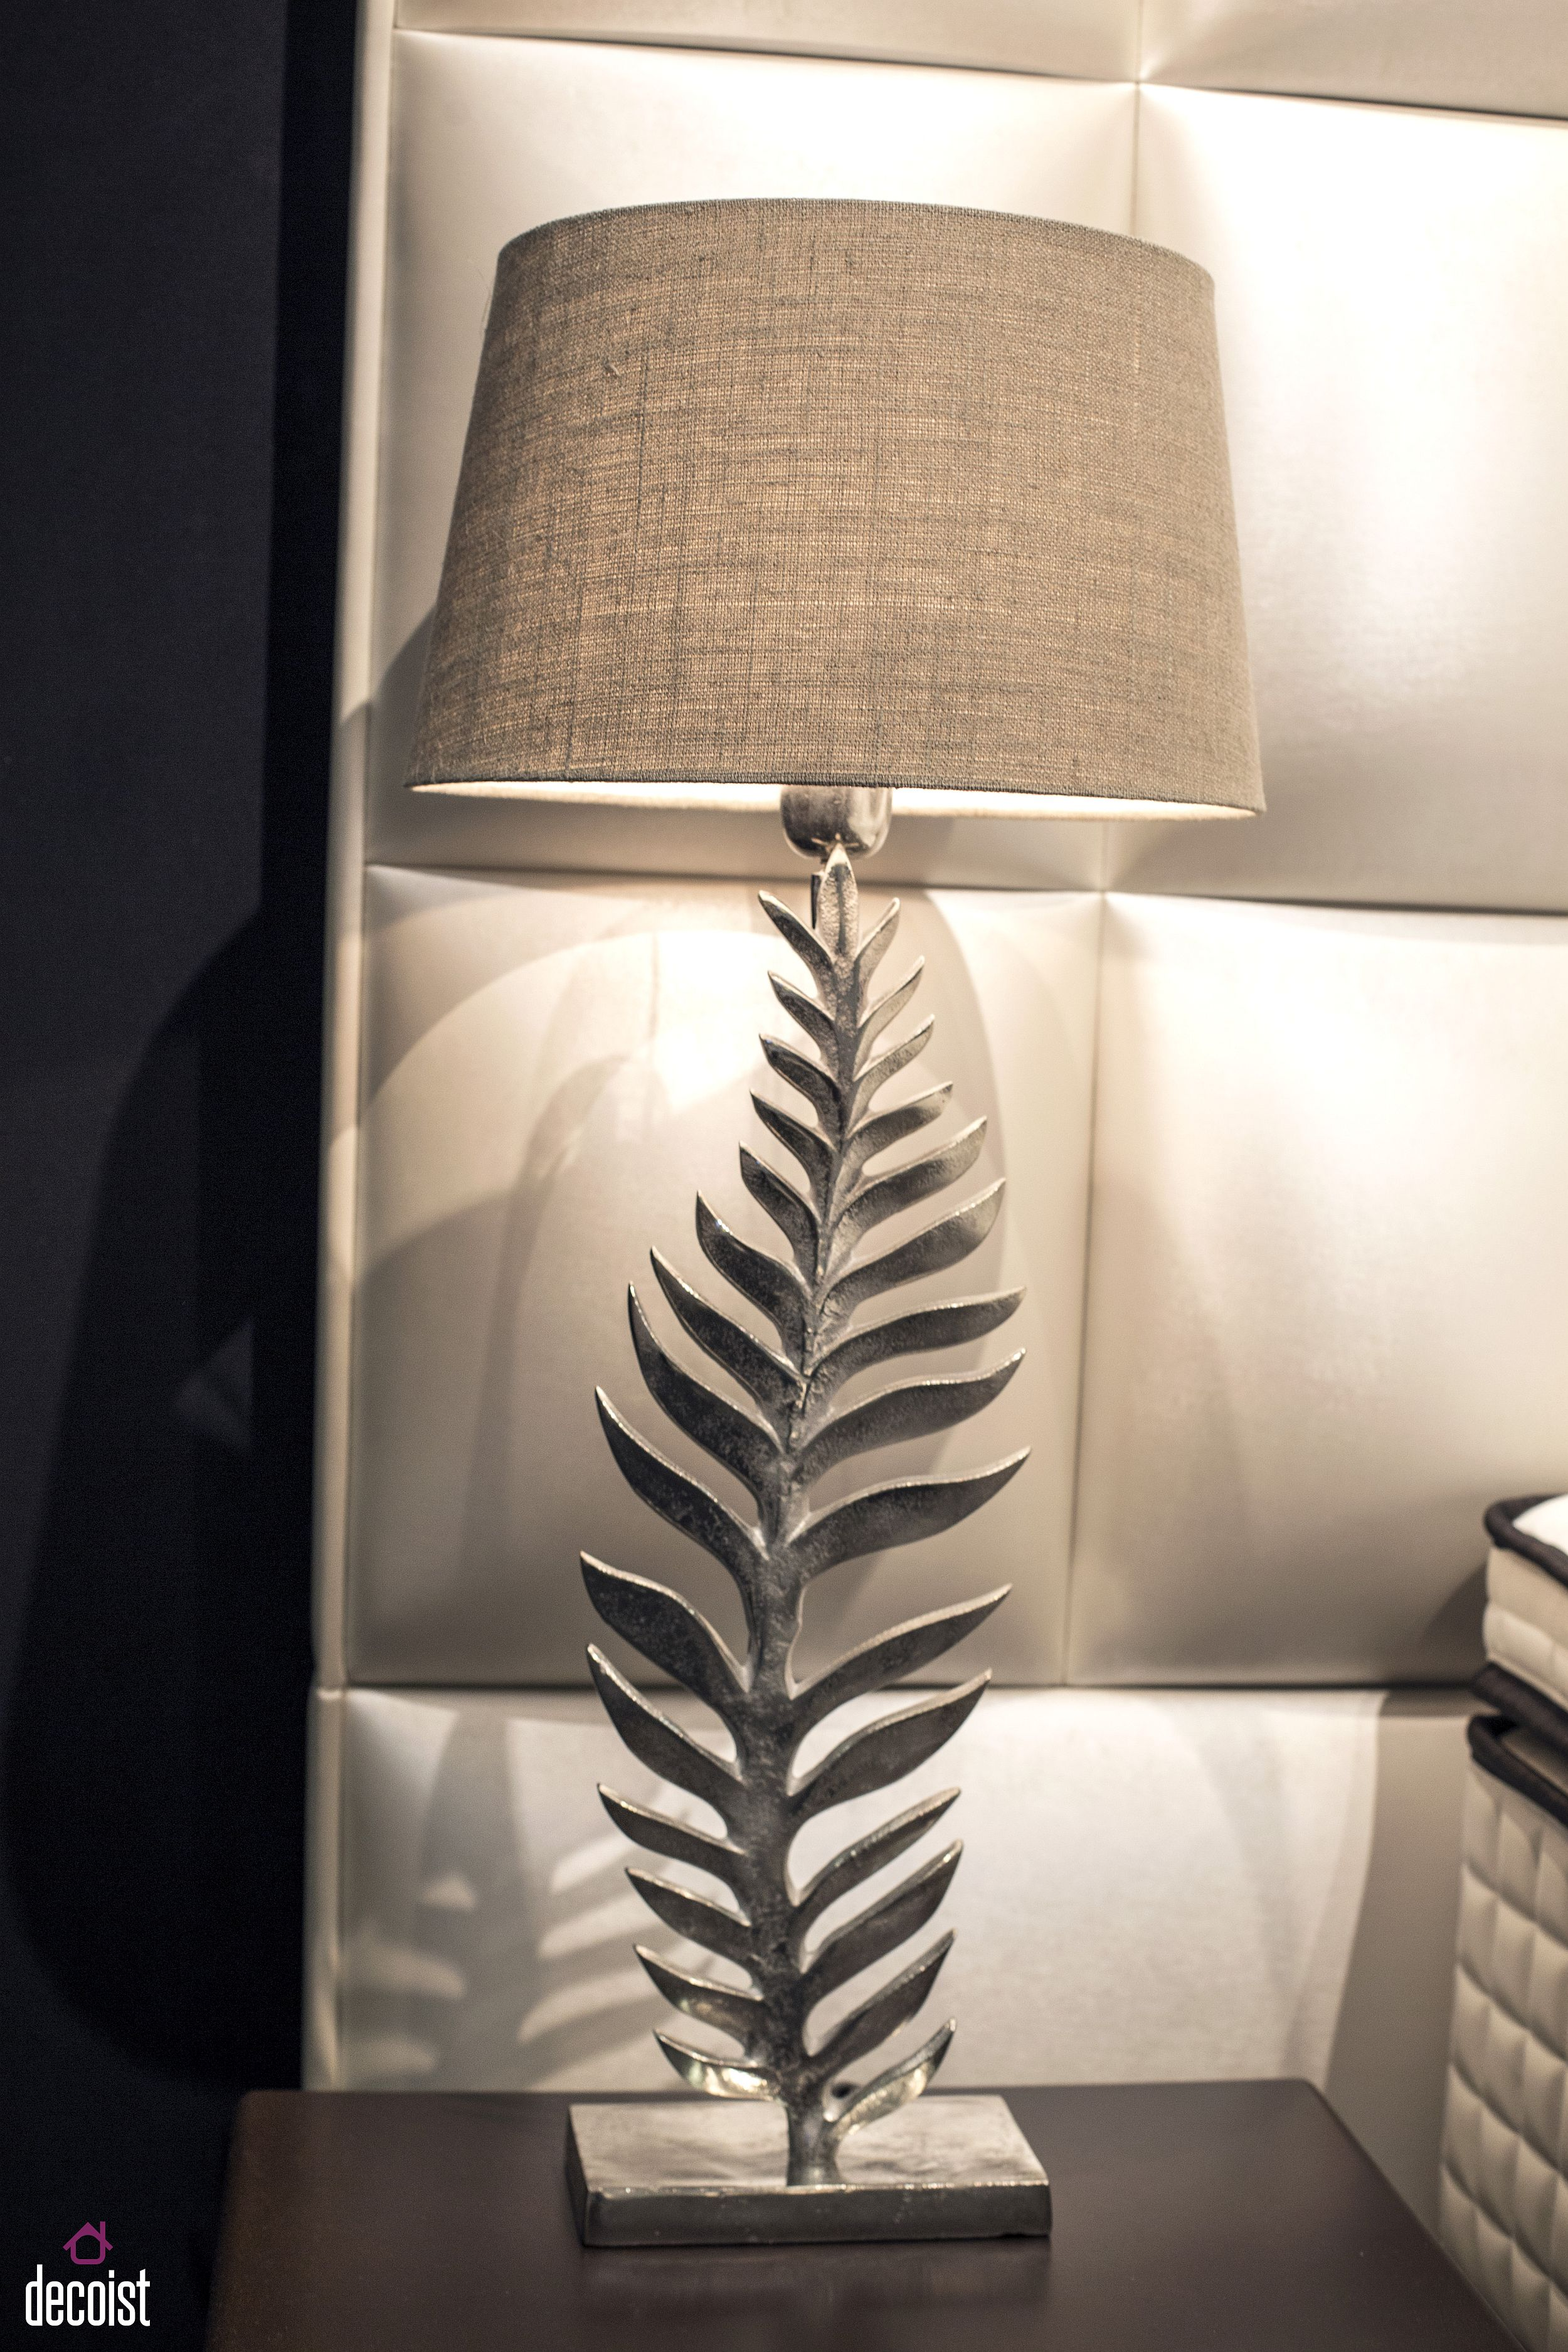 Bedside lamp with unique base features a design inspired by the shape of a leaf